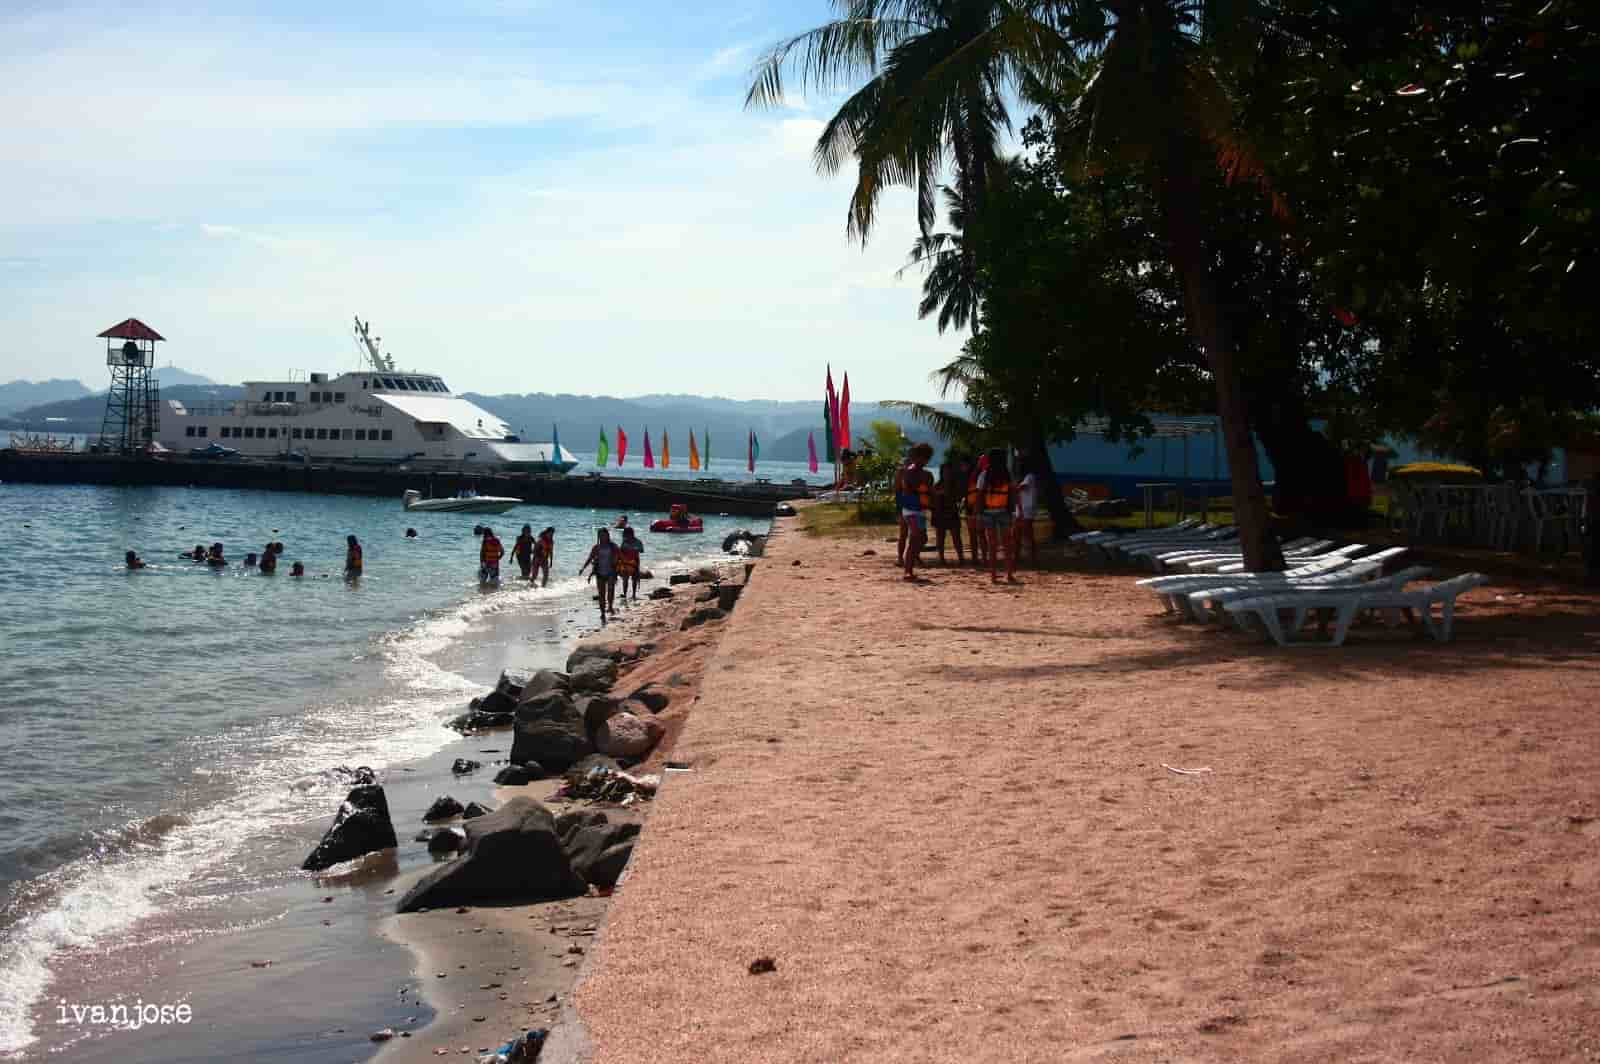 The segment of the beach near the port at Grande Island Resort